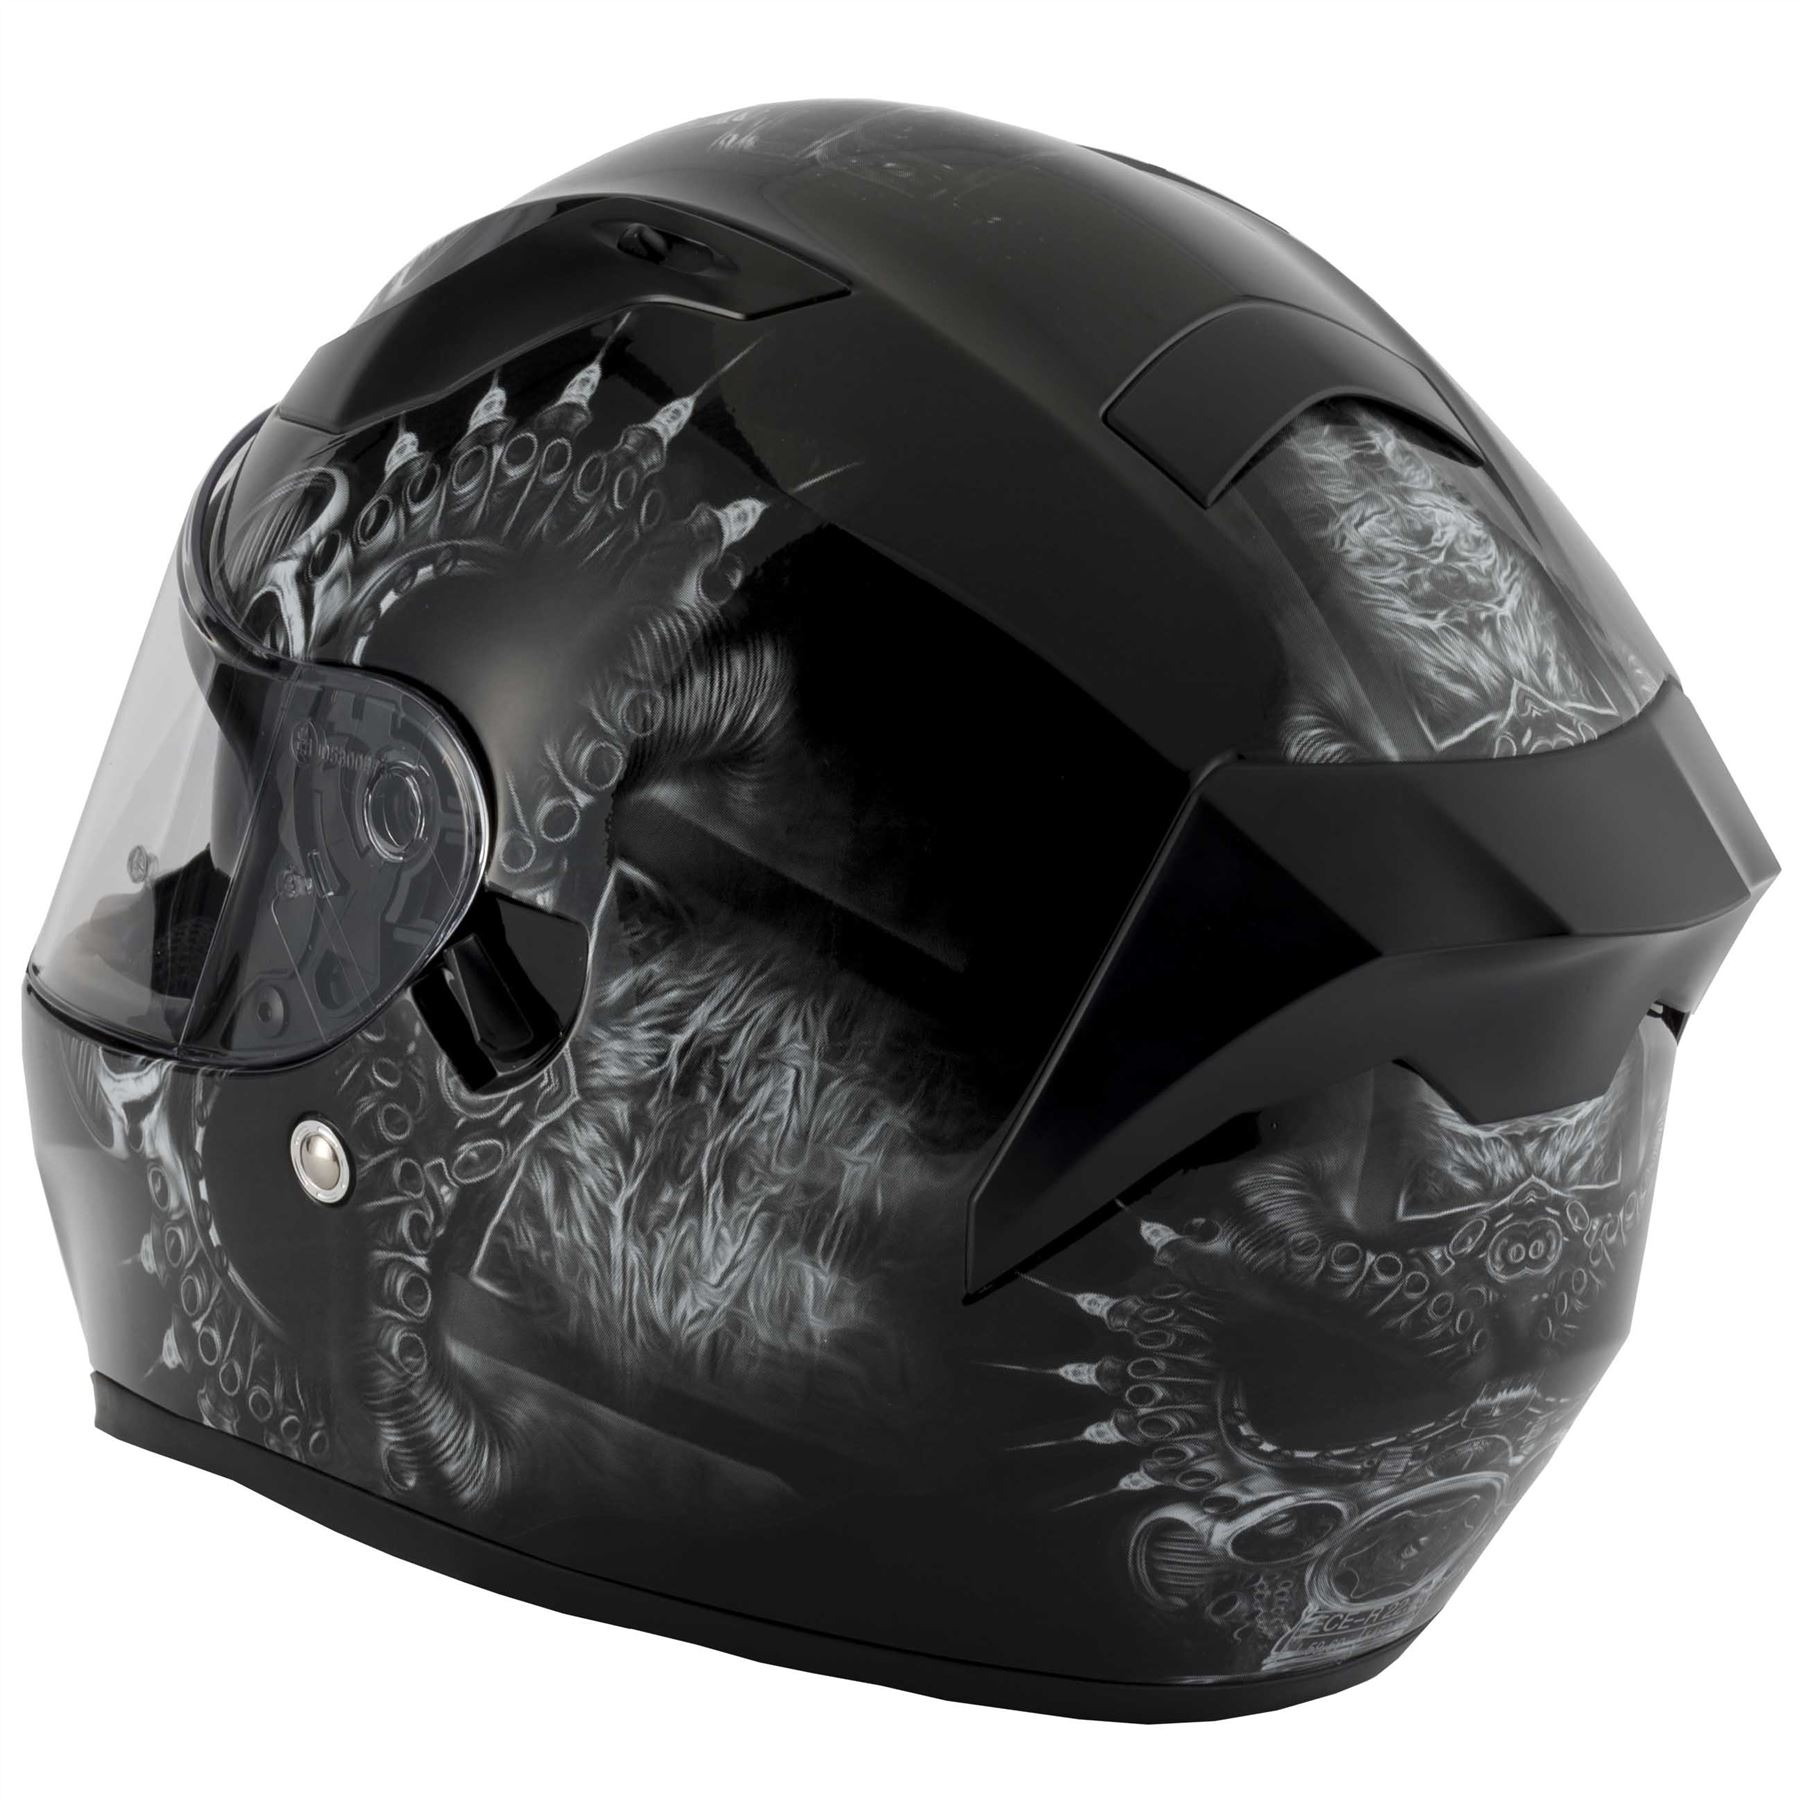 thumbnail 23 - VCAN V128 Dragon Skull Monster Motorcycle Bike Helmet With Drop Down Sun Visor